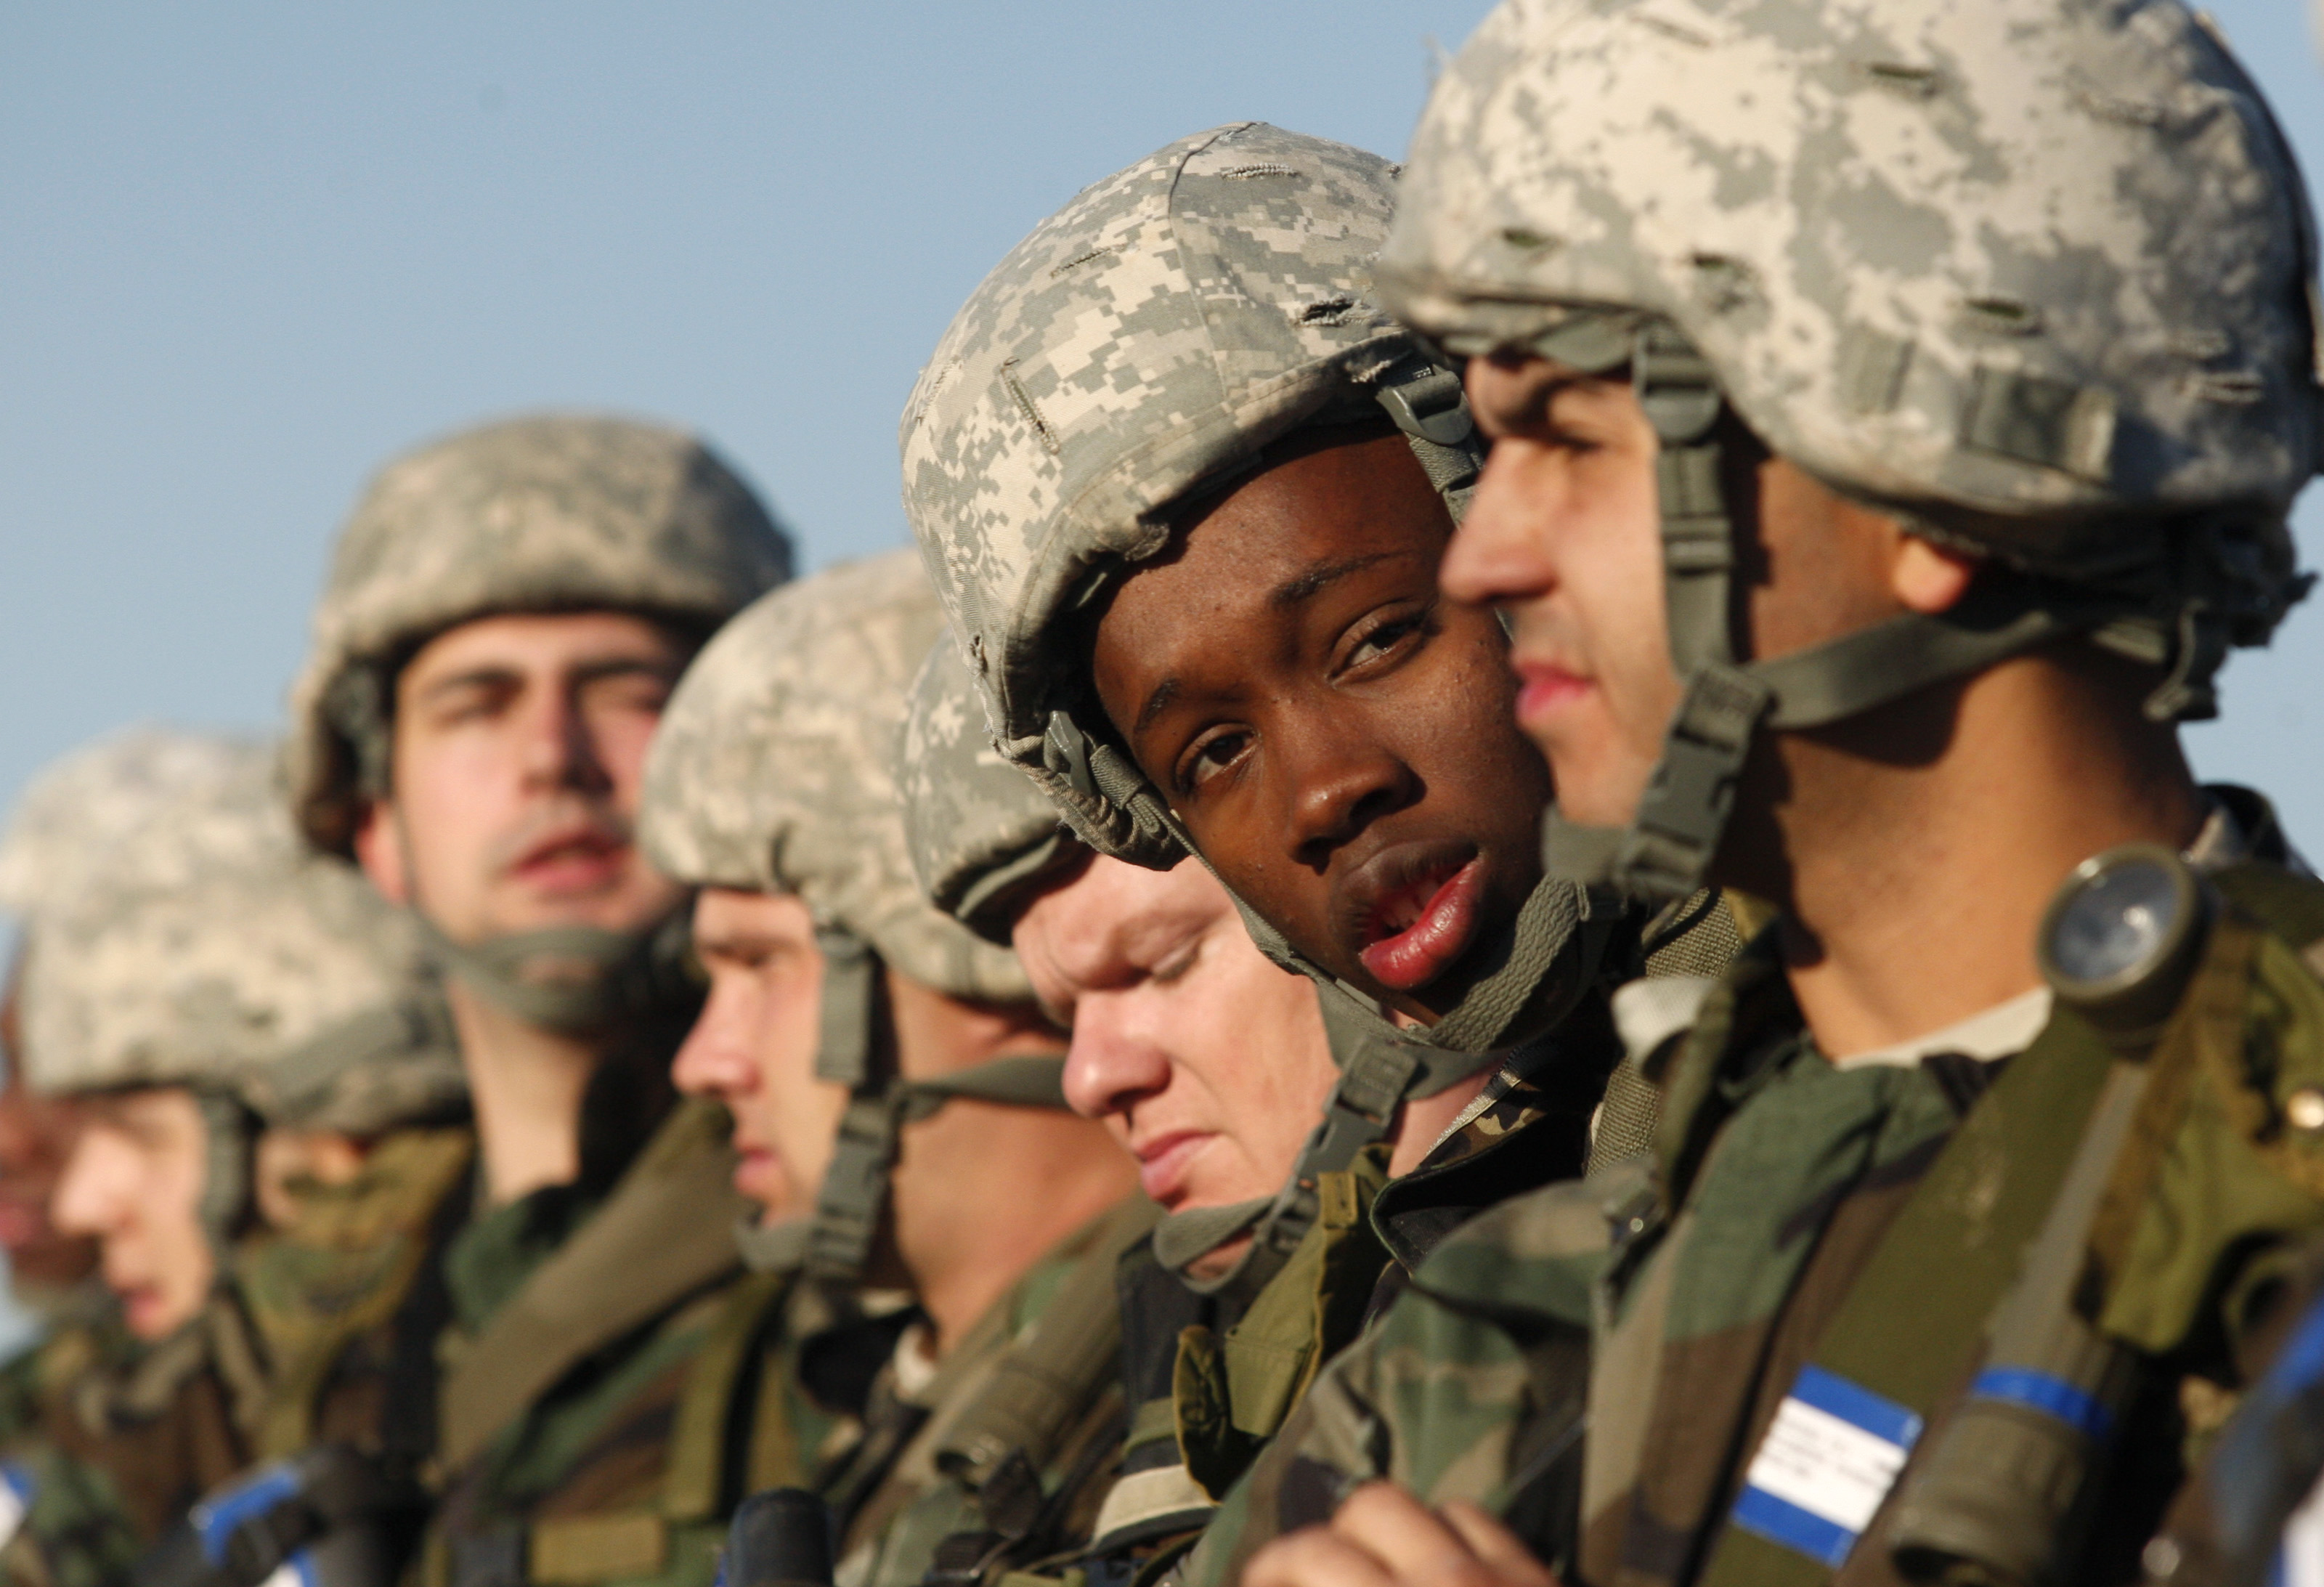 Incredible Military Advancements Future Troops May Not